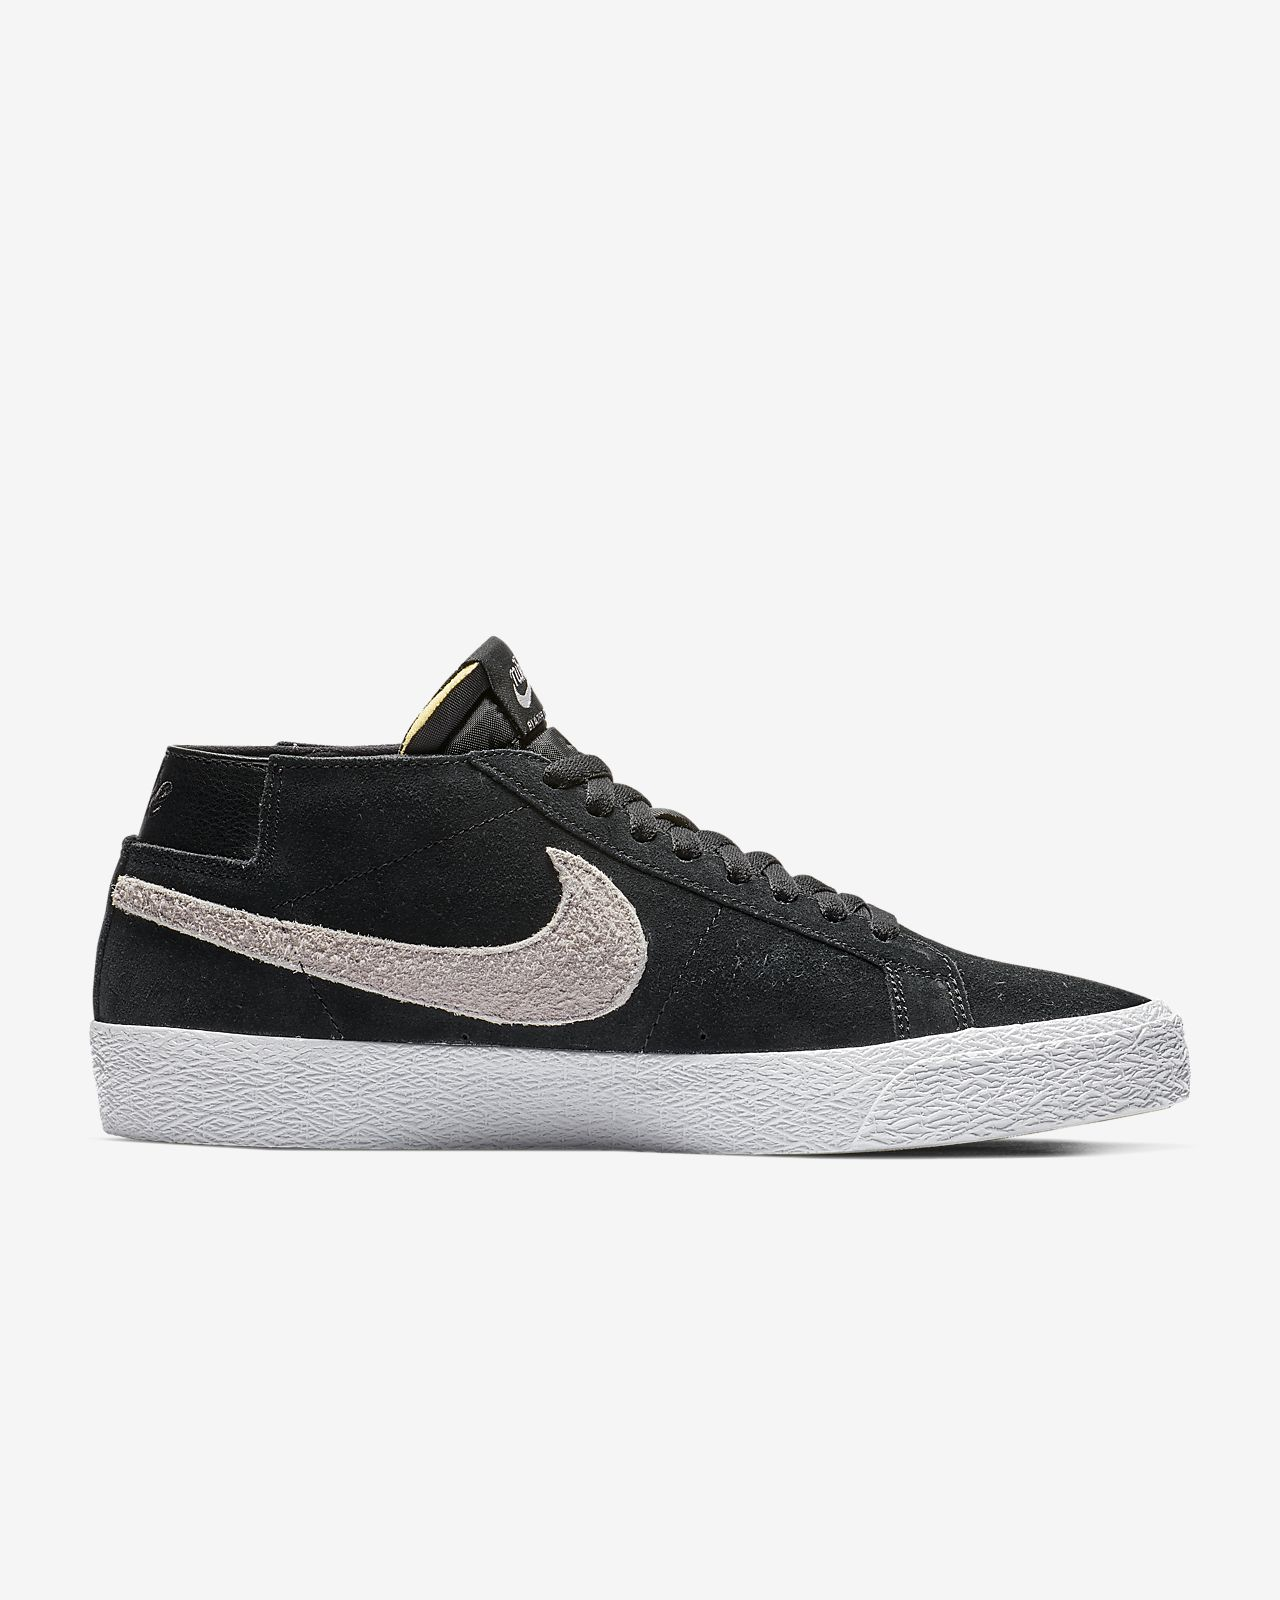 super popular 3d5b4 9f4c2 Nike SB Zoom Blazer Chukka Men's Skate Shoe